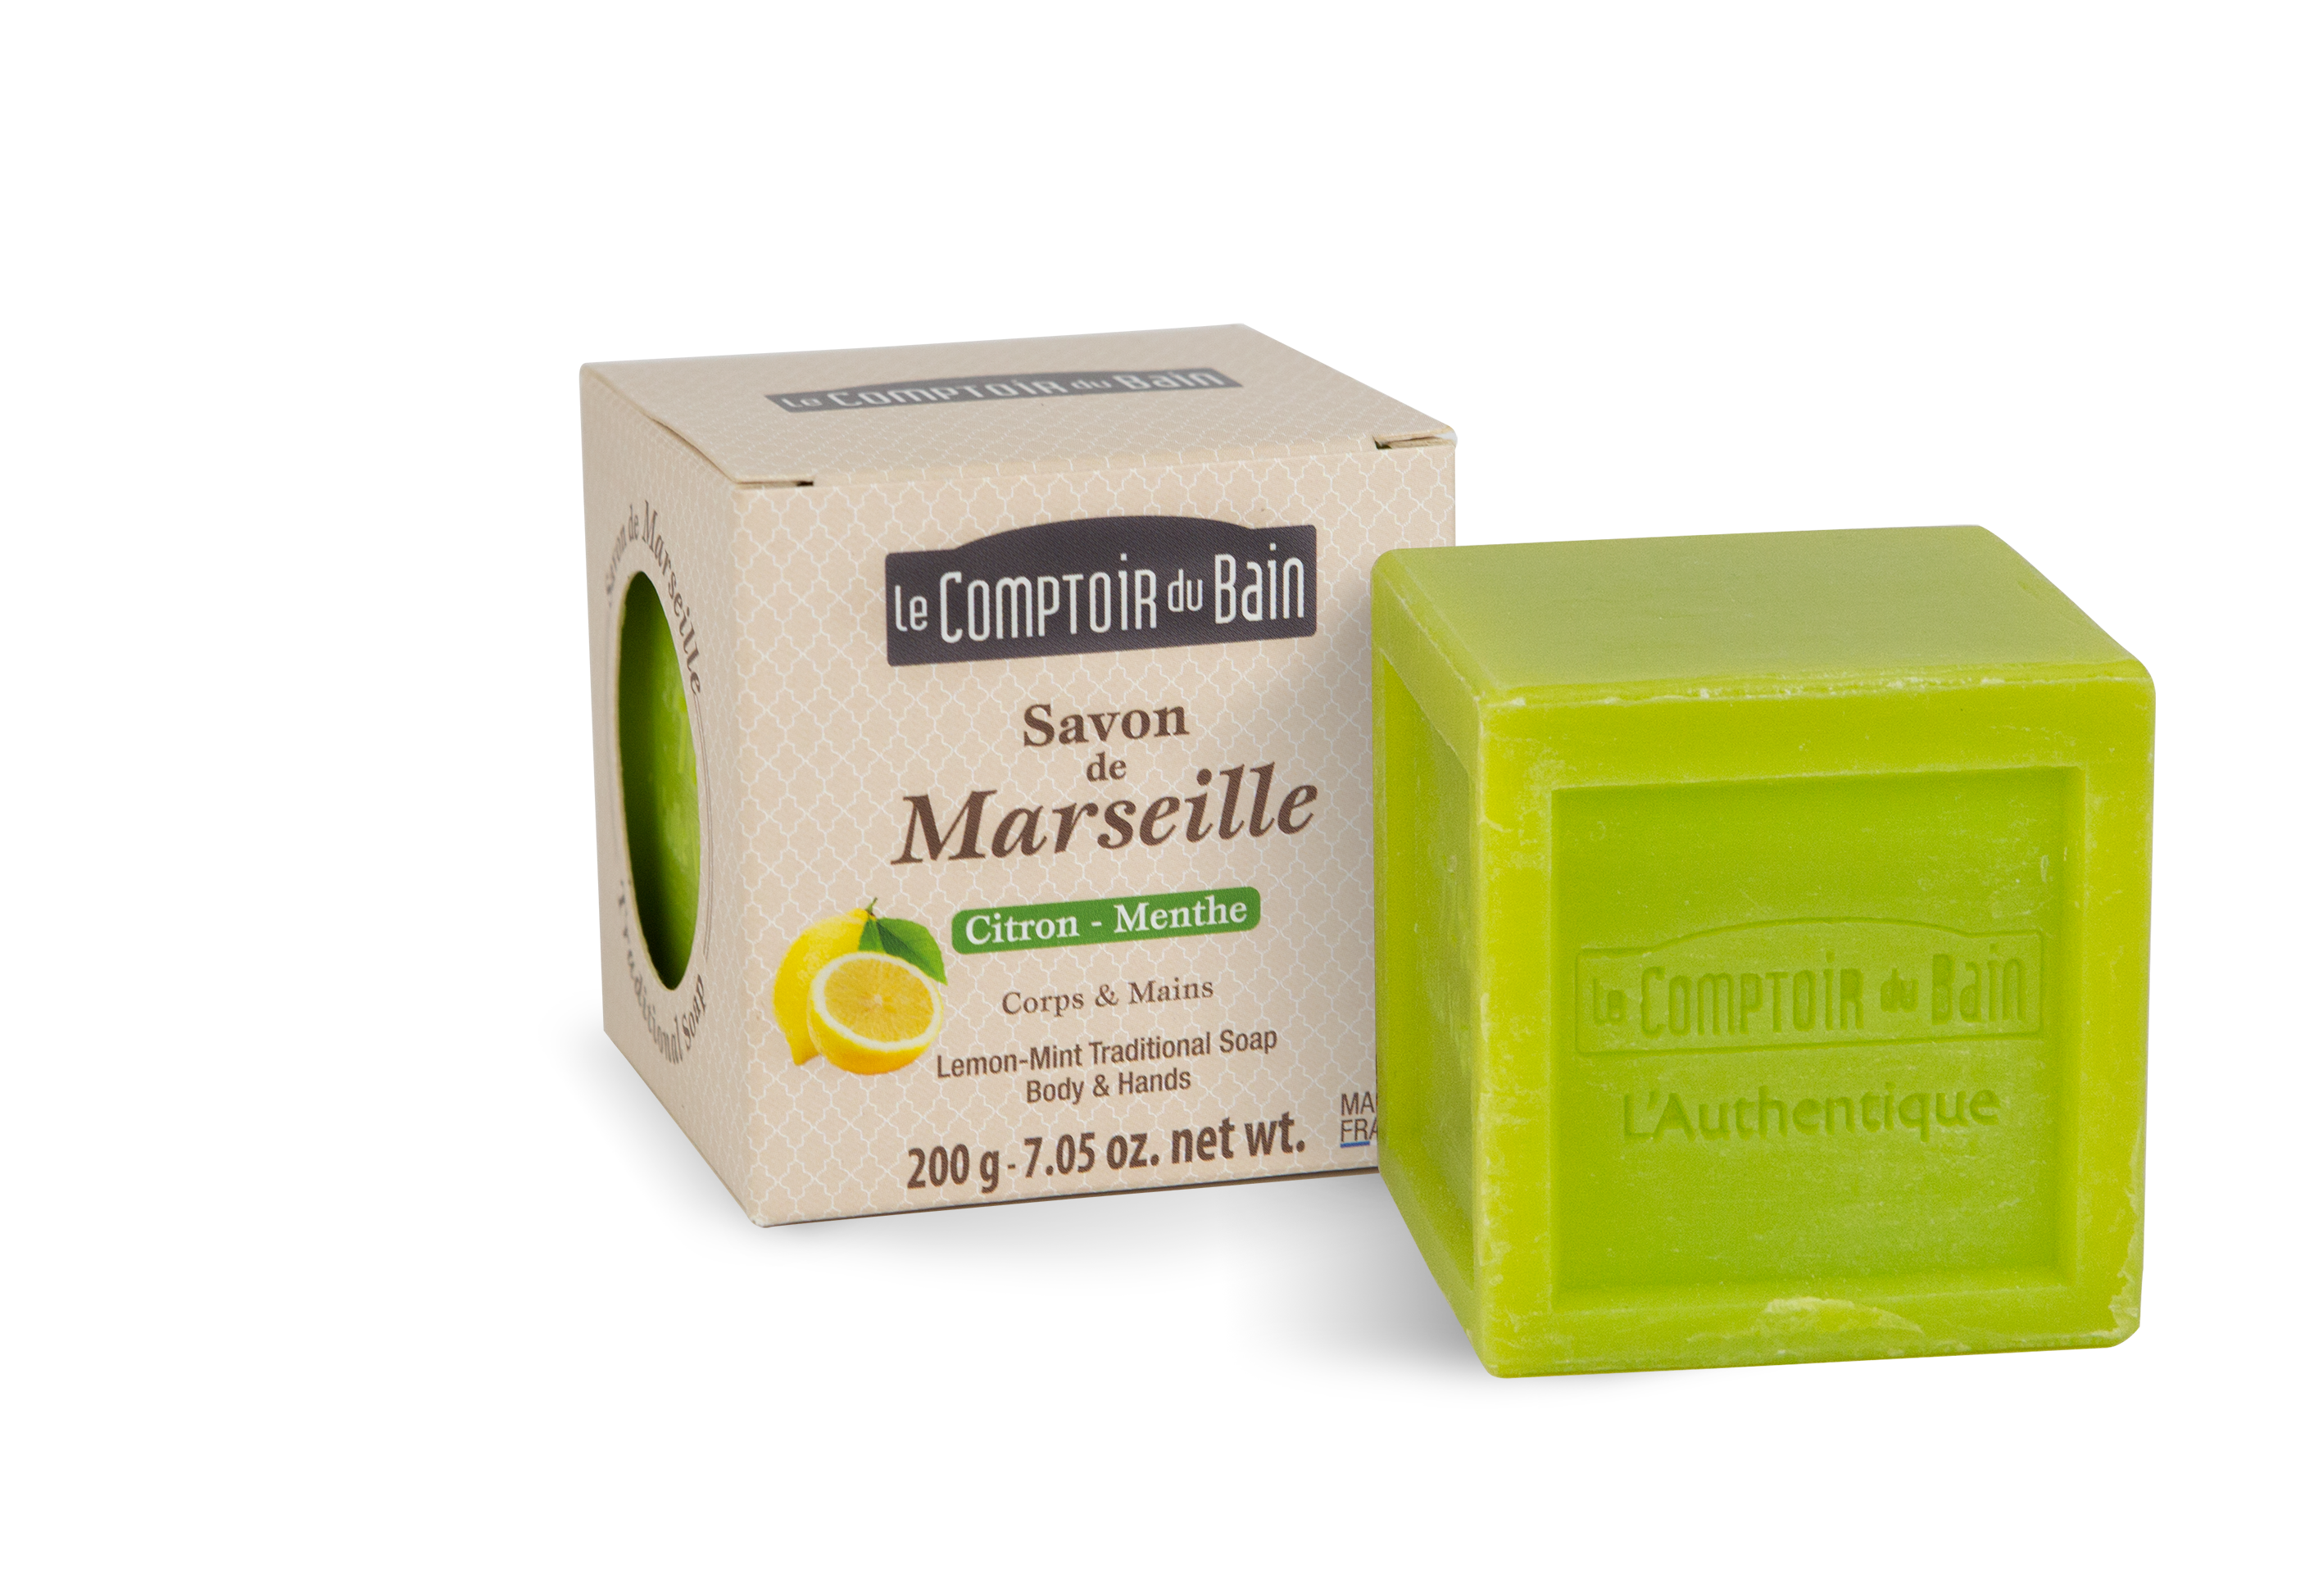 Lemon-Mint Traditionnal Soap